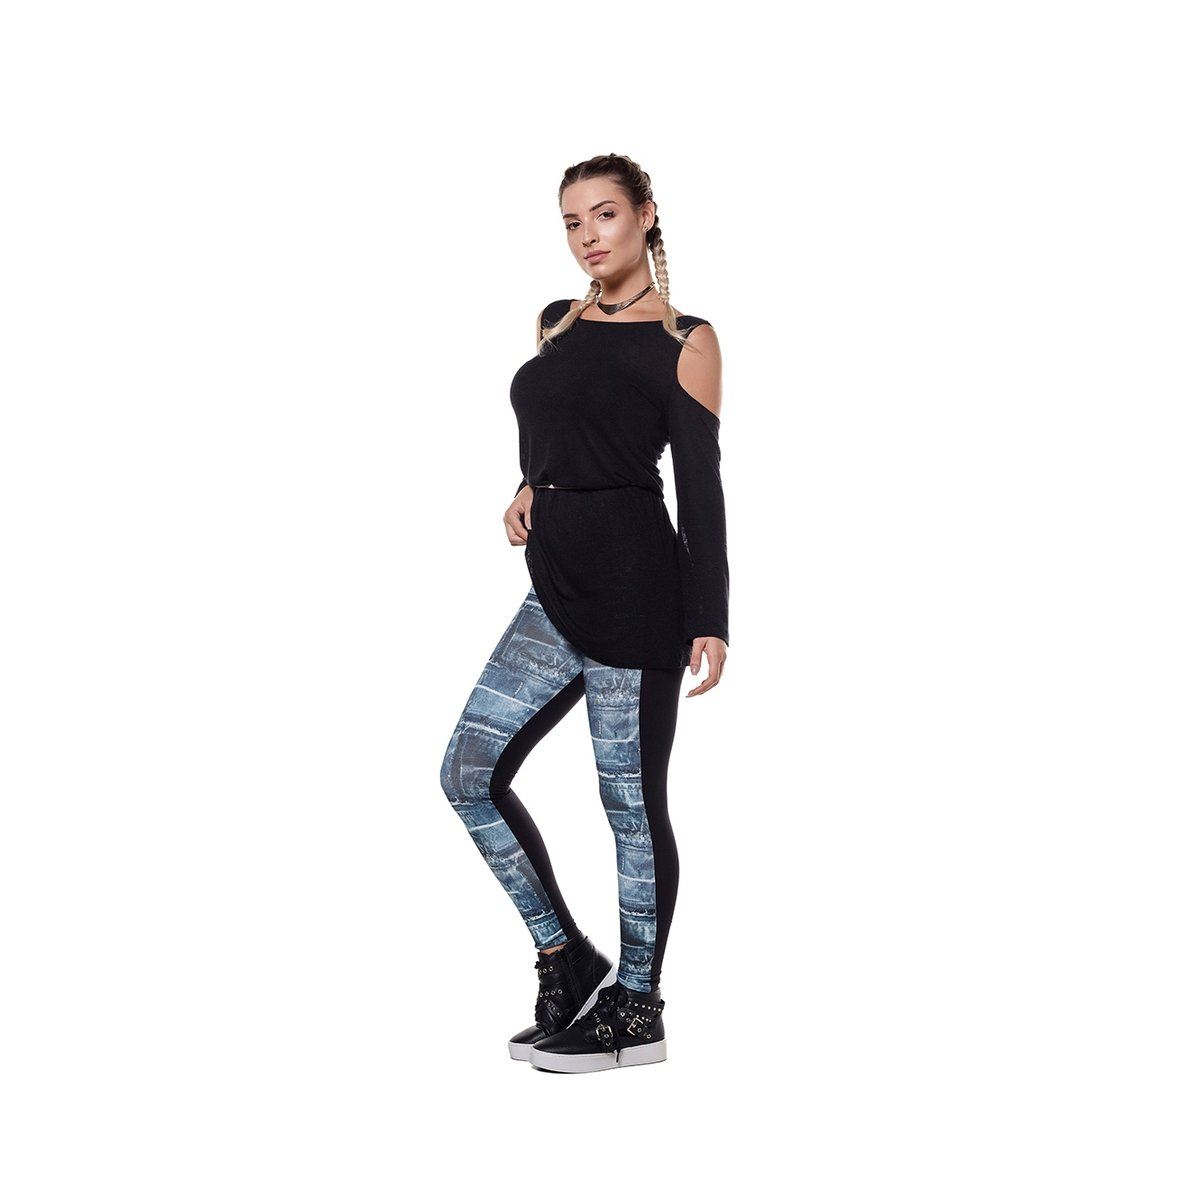 Jeans Abusy Feminina Legging Compression Jeans Azul Legging Compression Abusy qUvnZHxwBX